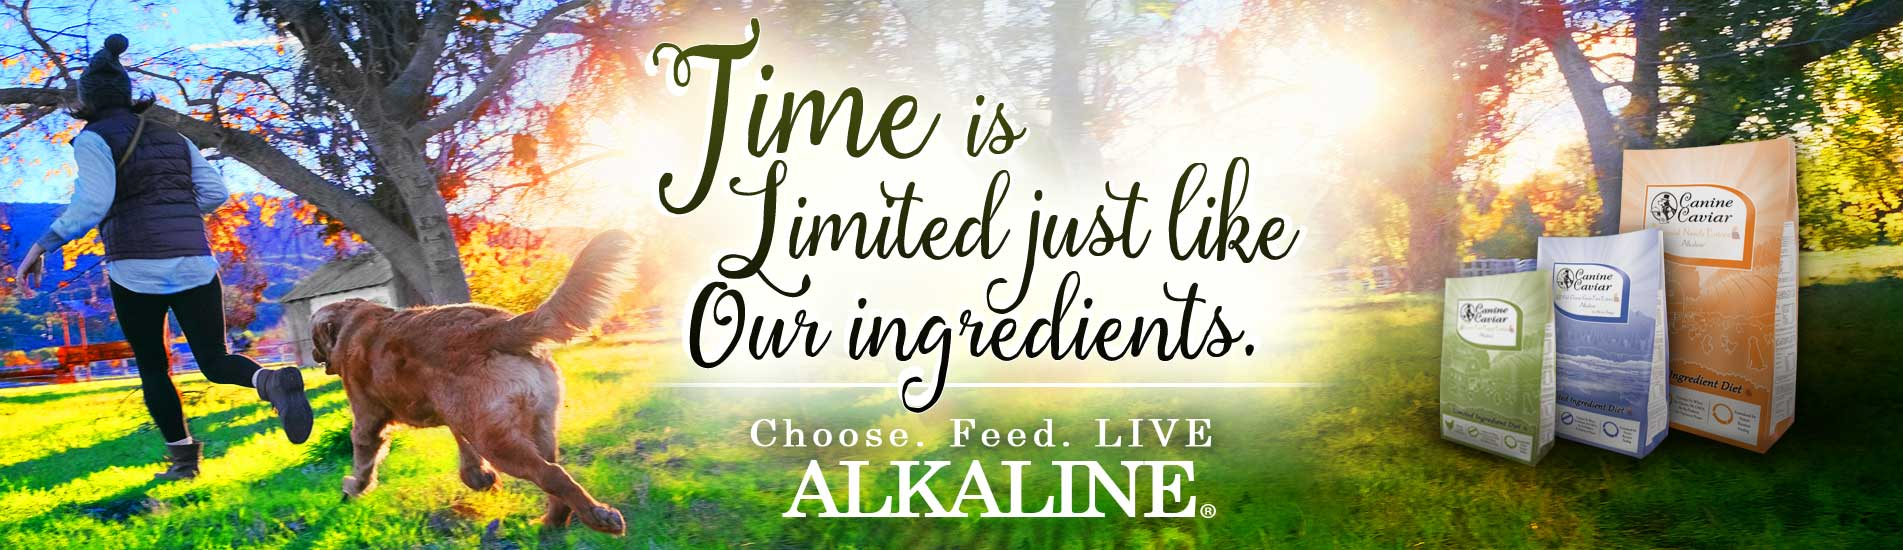 Canine Caviar Pet Foods Inc. Homeapge - The First And Only Alkaline Dog Food